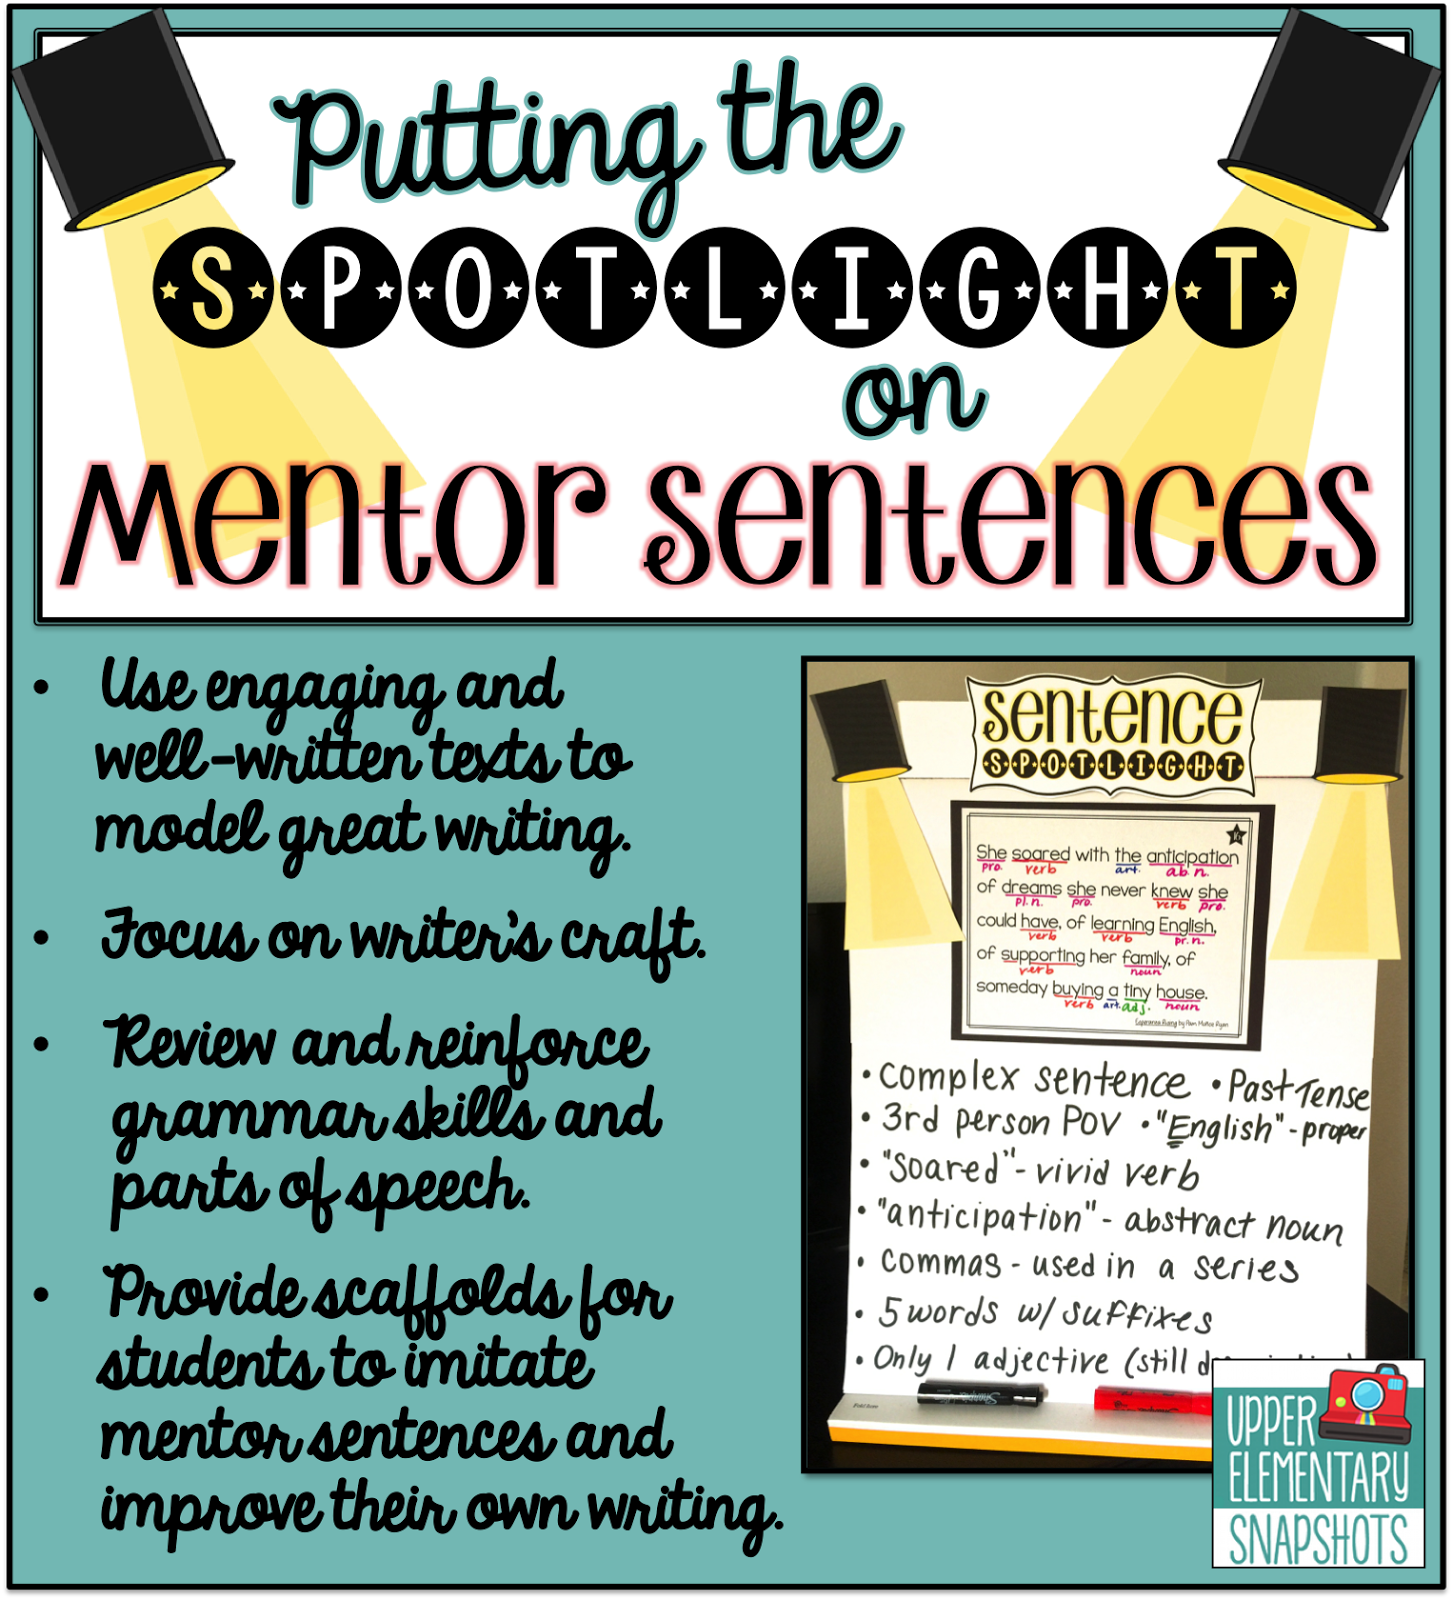 hight resolution of Putting the Spotlight on Mentor Sentences   Upper Elementary Snapshots